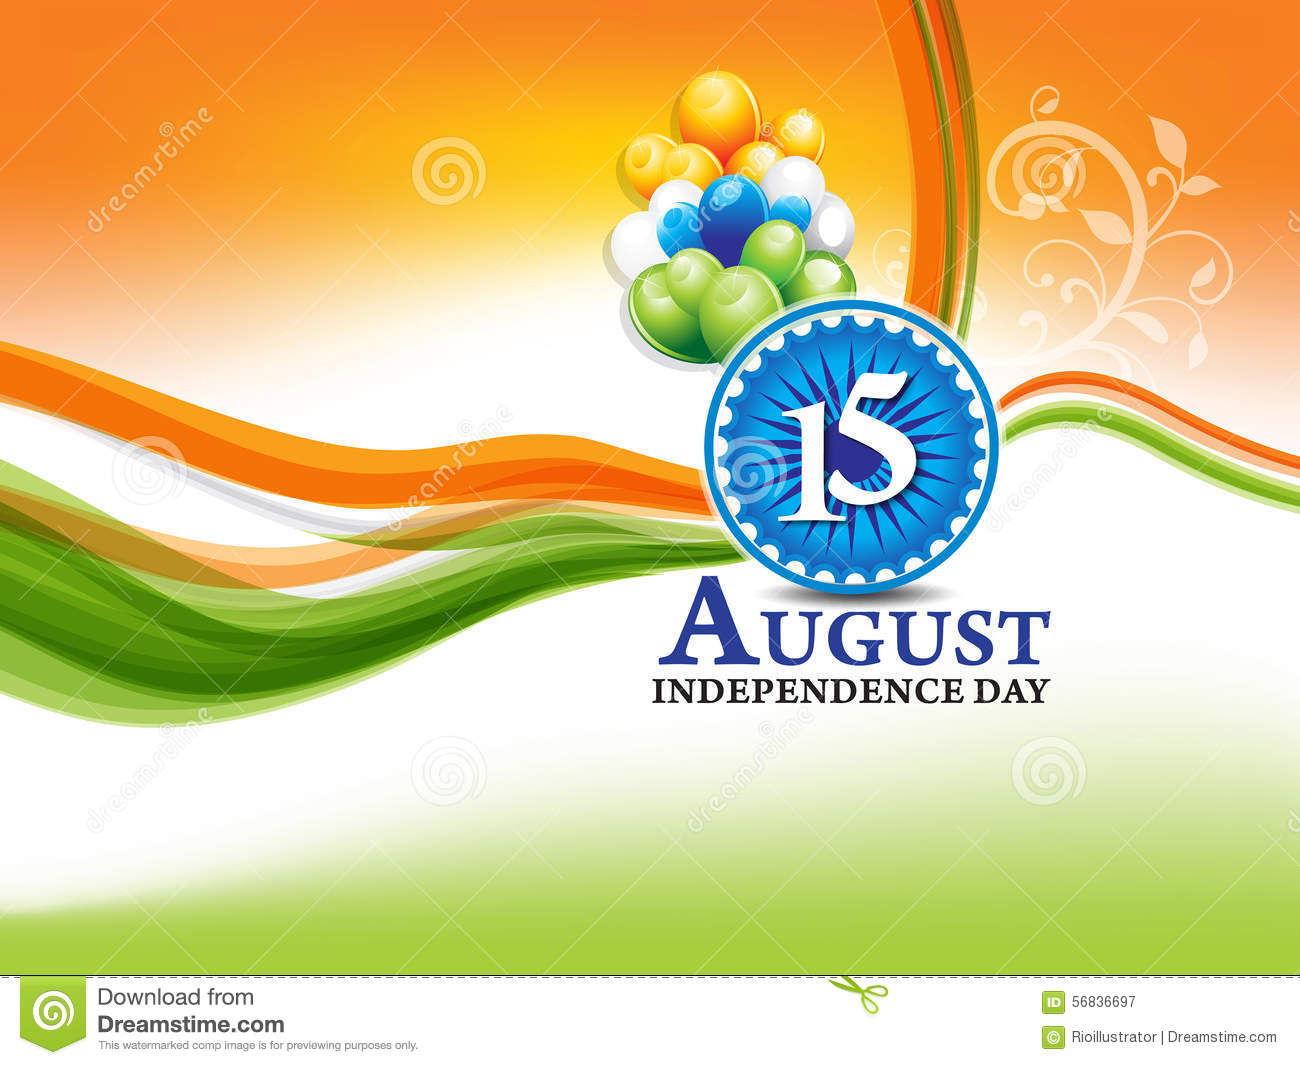 debate on indian independence 15 august The independence day of india, celebrated on 15 august, is a holiday commemorating india's independence from the british rule and its birth as a sovereign nation on 15 august 1947.